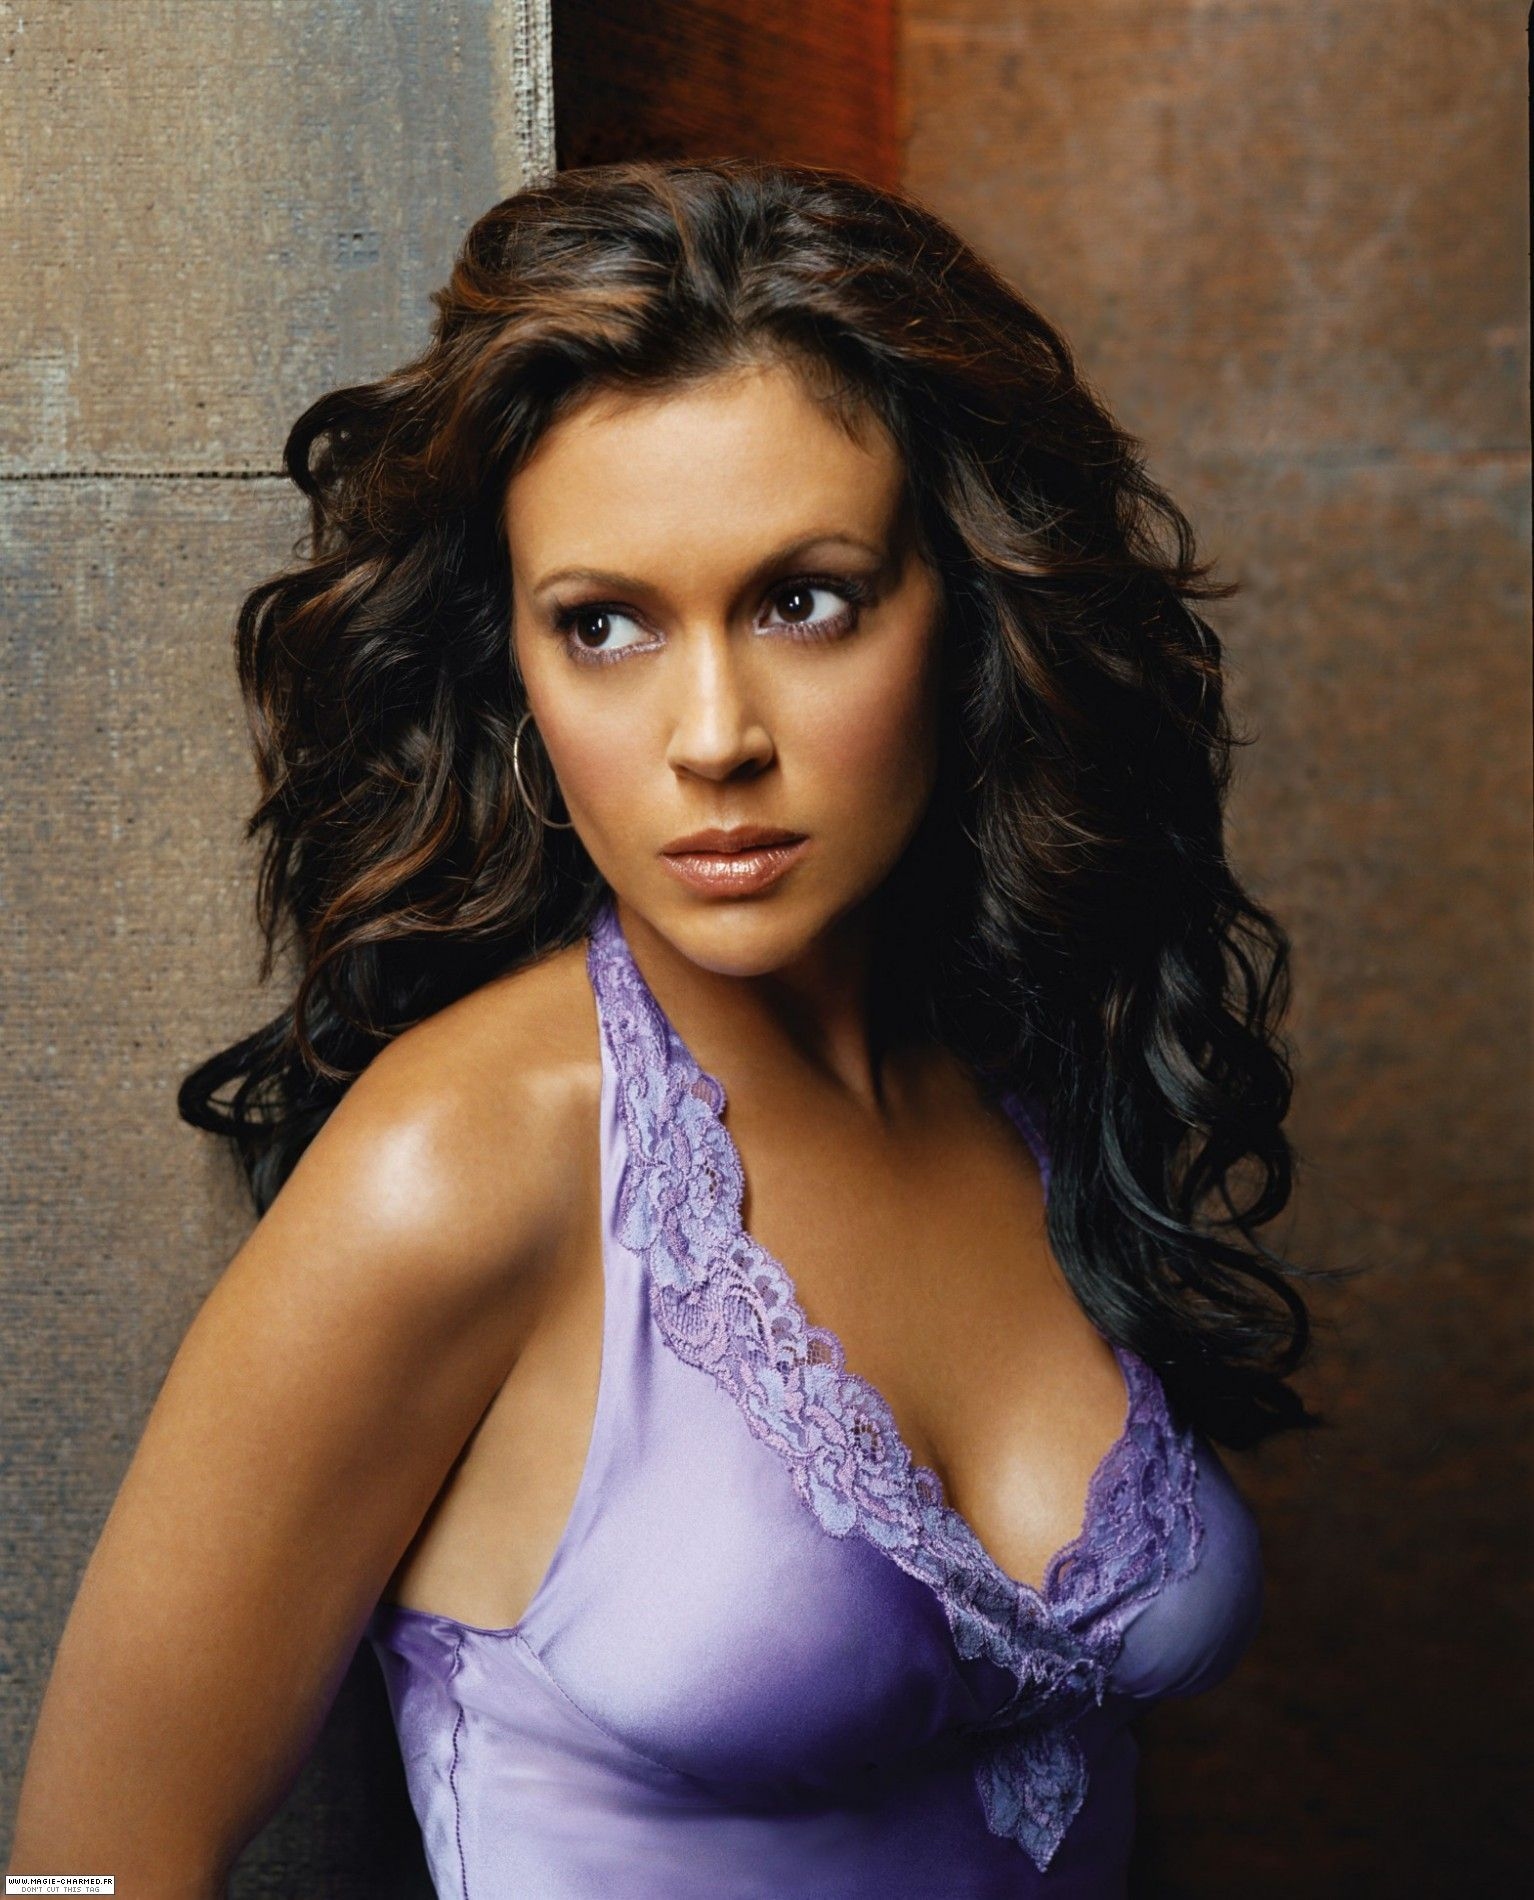 Alyssa Milano Leaked Photos pin on alyssa milano (actress)